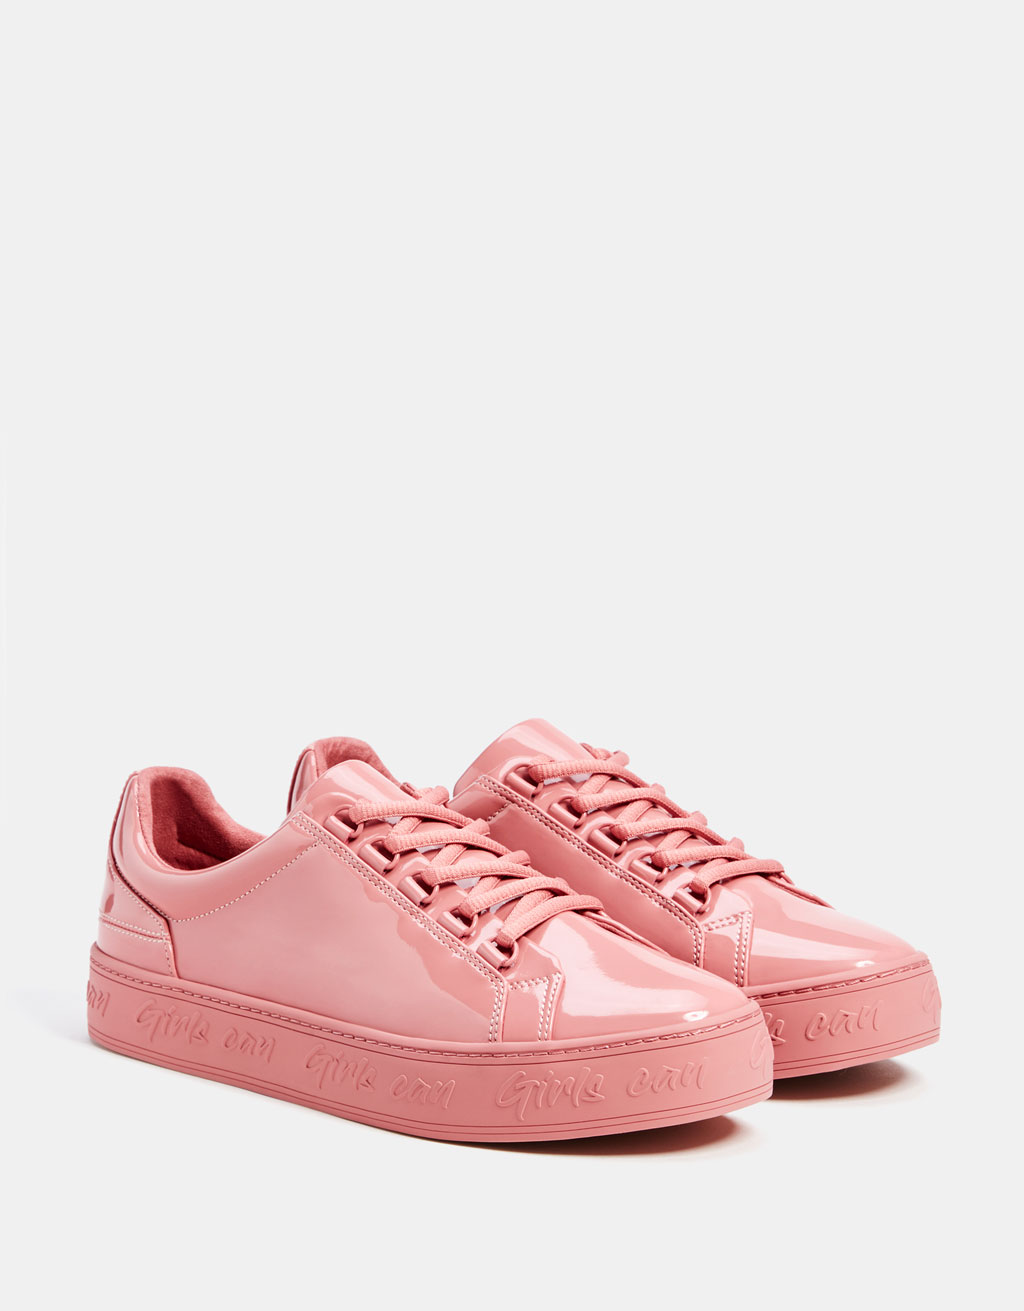 8003910021c Pink faux patent leather trainers - null - Bershka Honduras